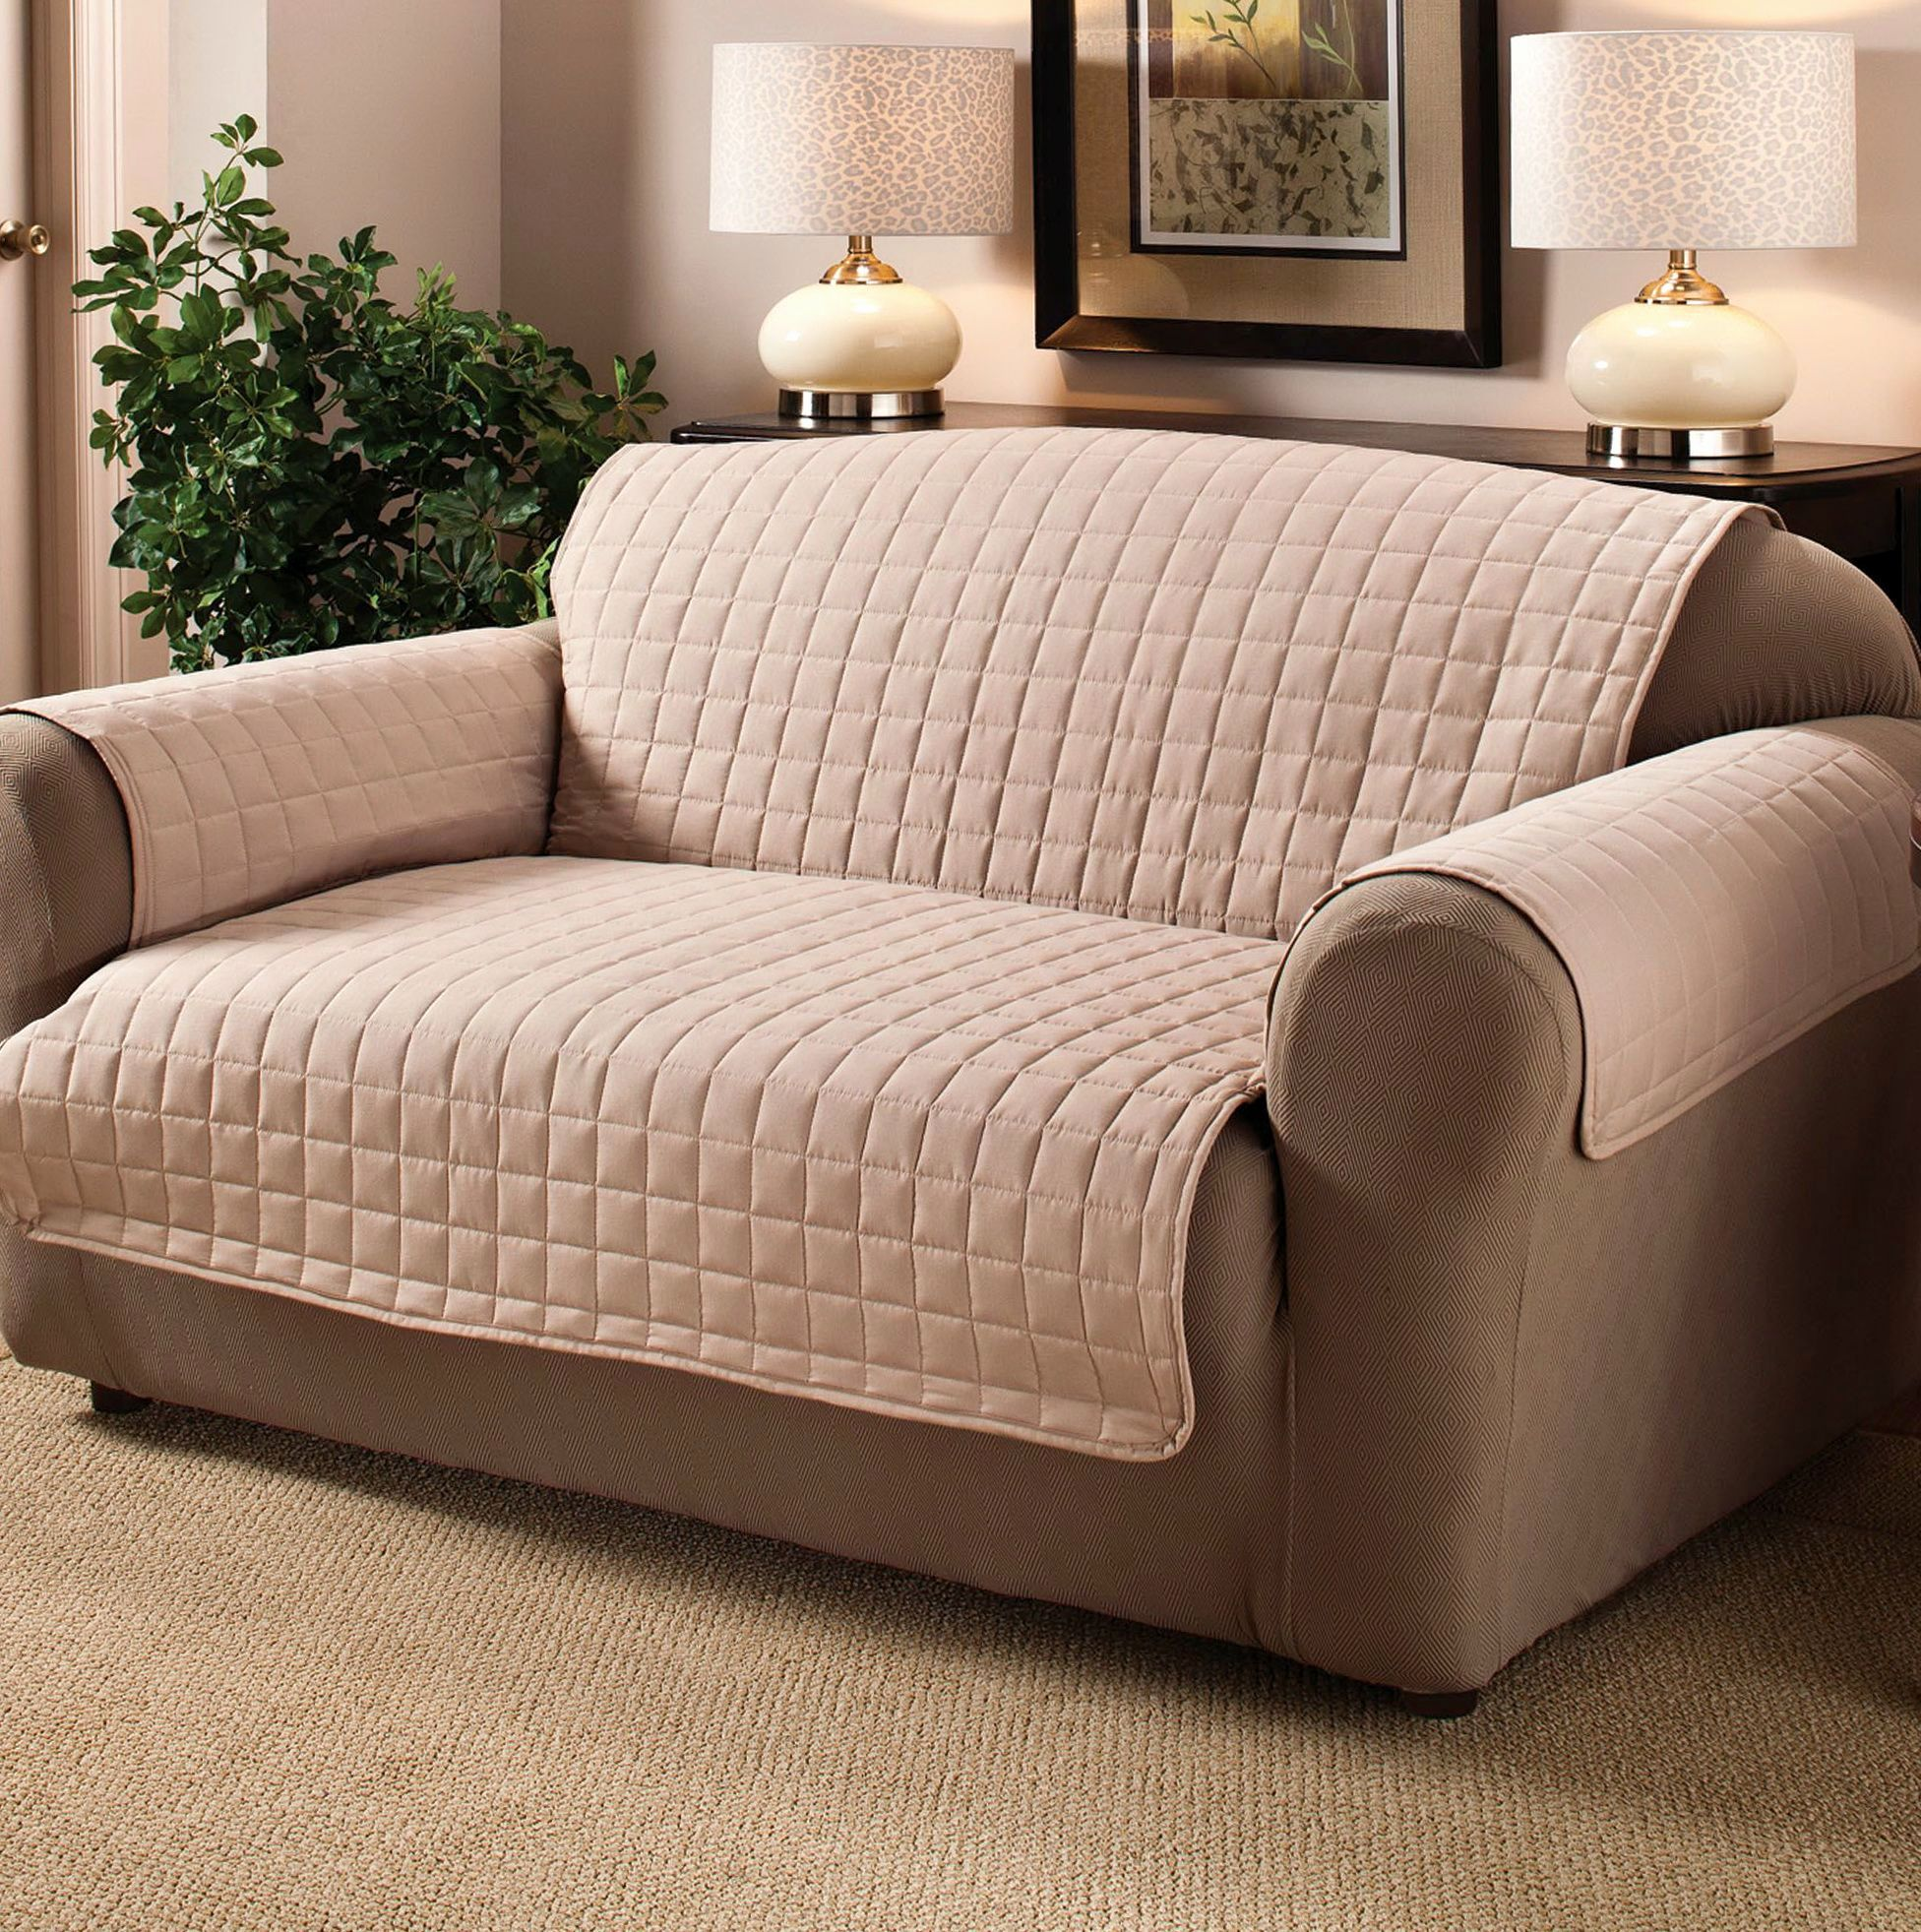 Sears Sofa Covers Image Sears Sofa Covers Unique Furniture Couch Covers Walmart For Easily Protec Furniture Covers Slipcovers Sofa Furniture Furniture Loveseat